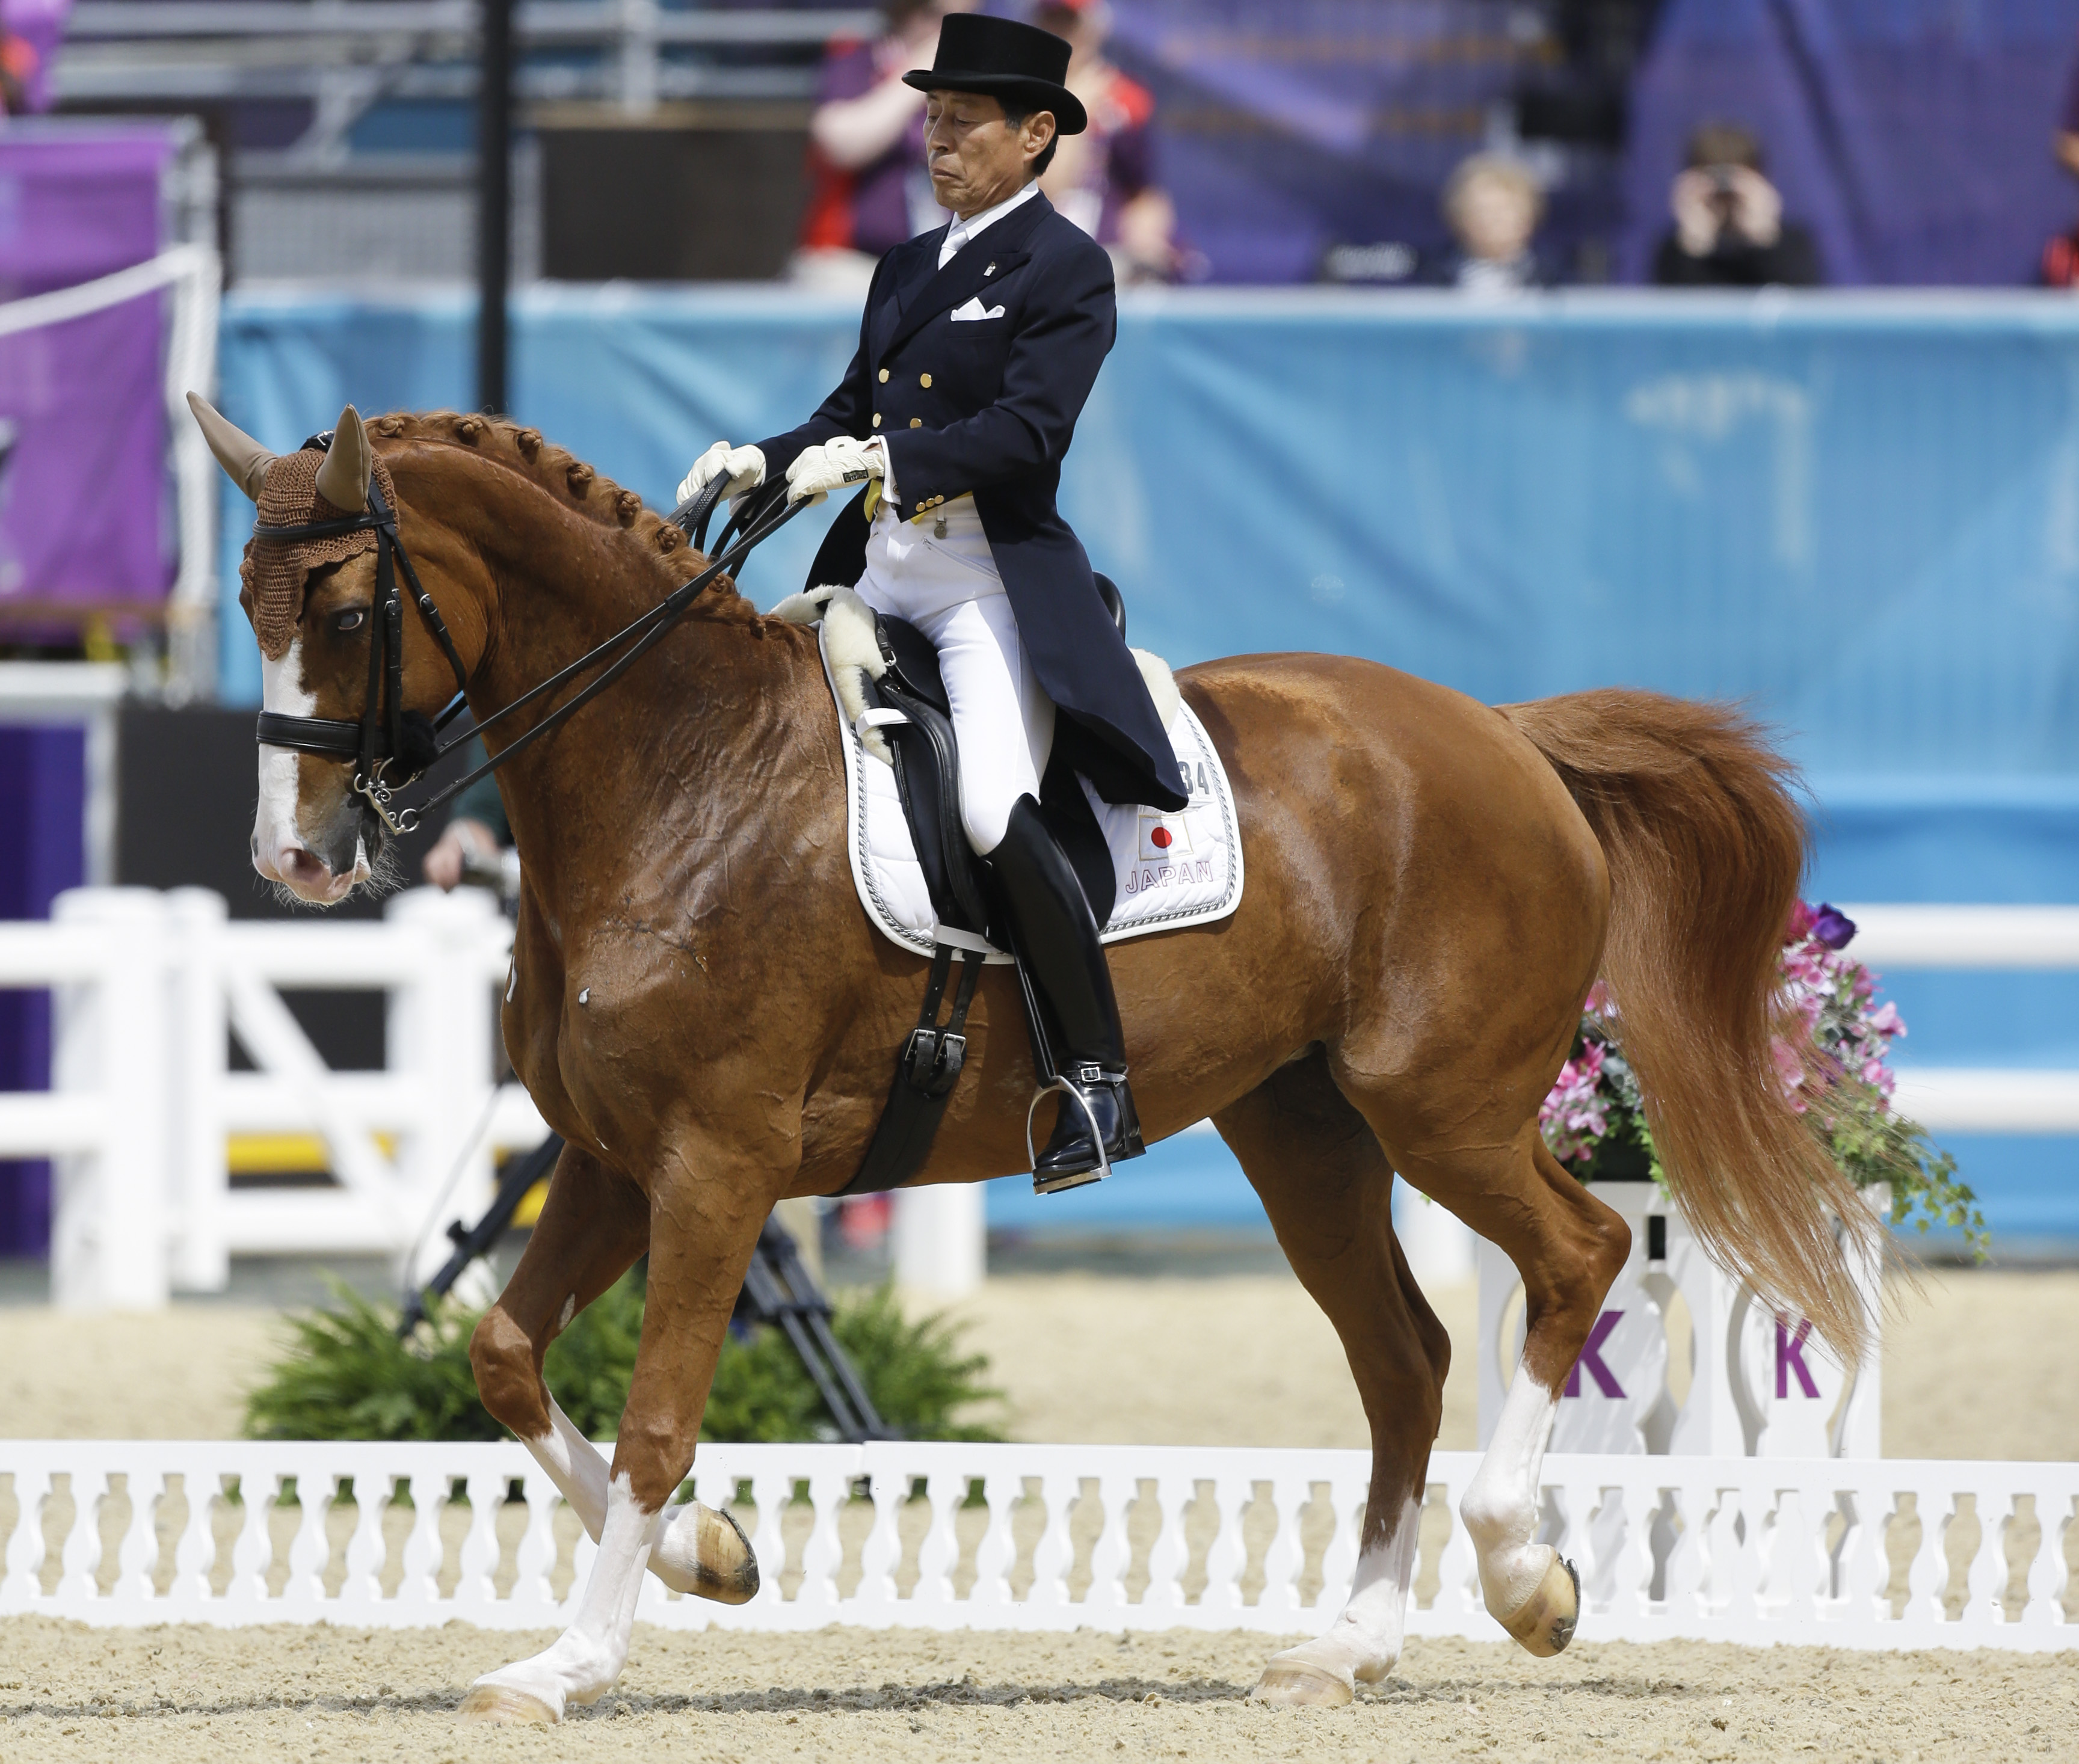 FILE - This is a Thursday, Aug. 2, 2012,  file photo of Hiroshi Hoketsu from Japan as he rides Whisper in the equestrian dressage competition, at the 2012 Summer Olympics in London.  Hiroshi Hoketsu a 75-year-old Japanese equestrian athlete will not be ab